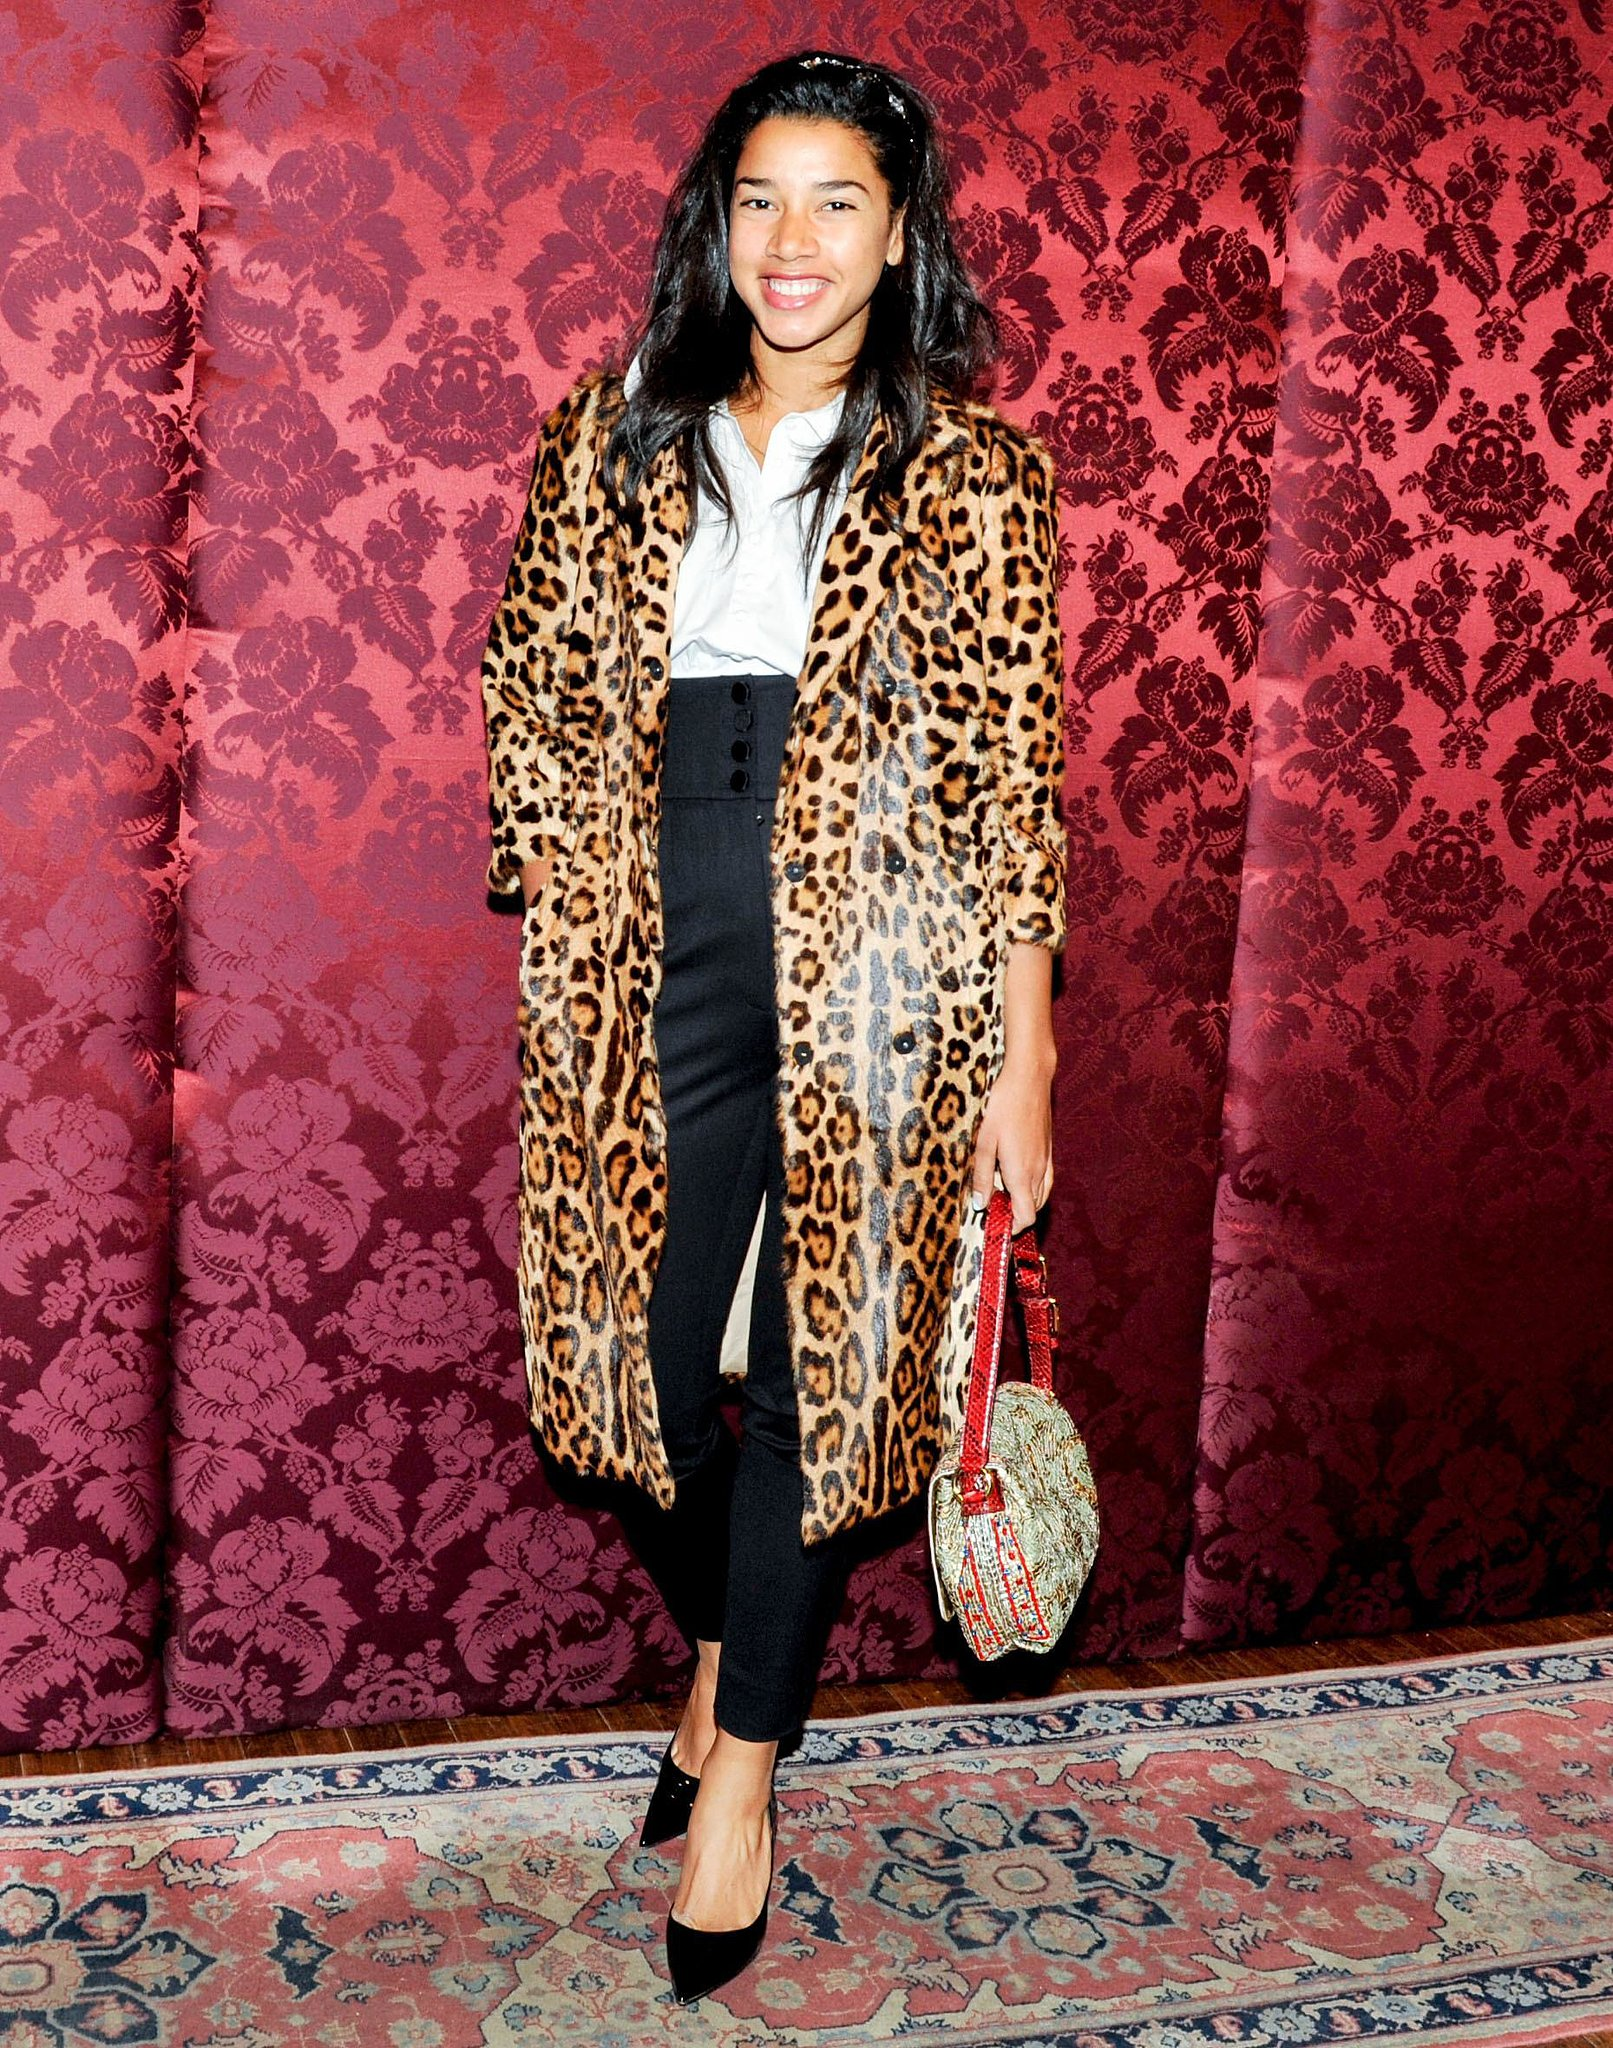 Hannah Bronfman was spotted in leopard print at Artwalk's party.